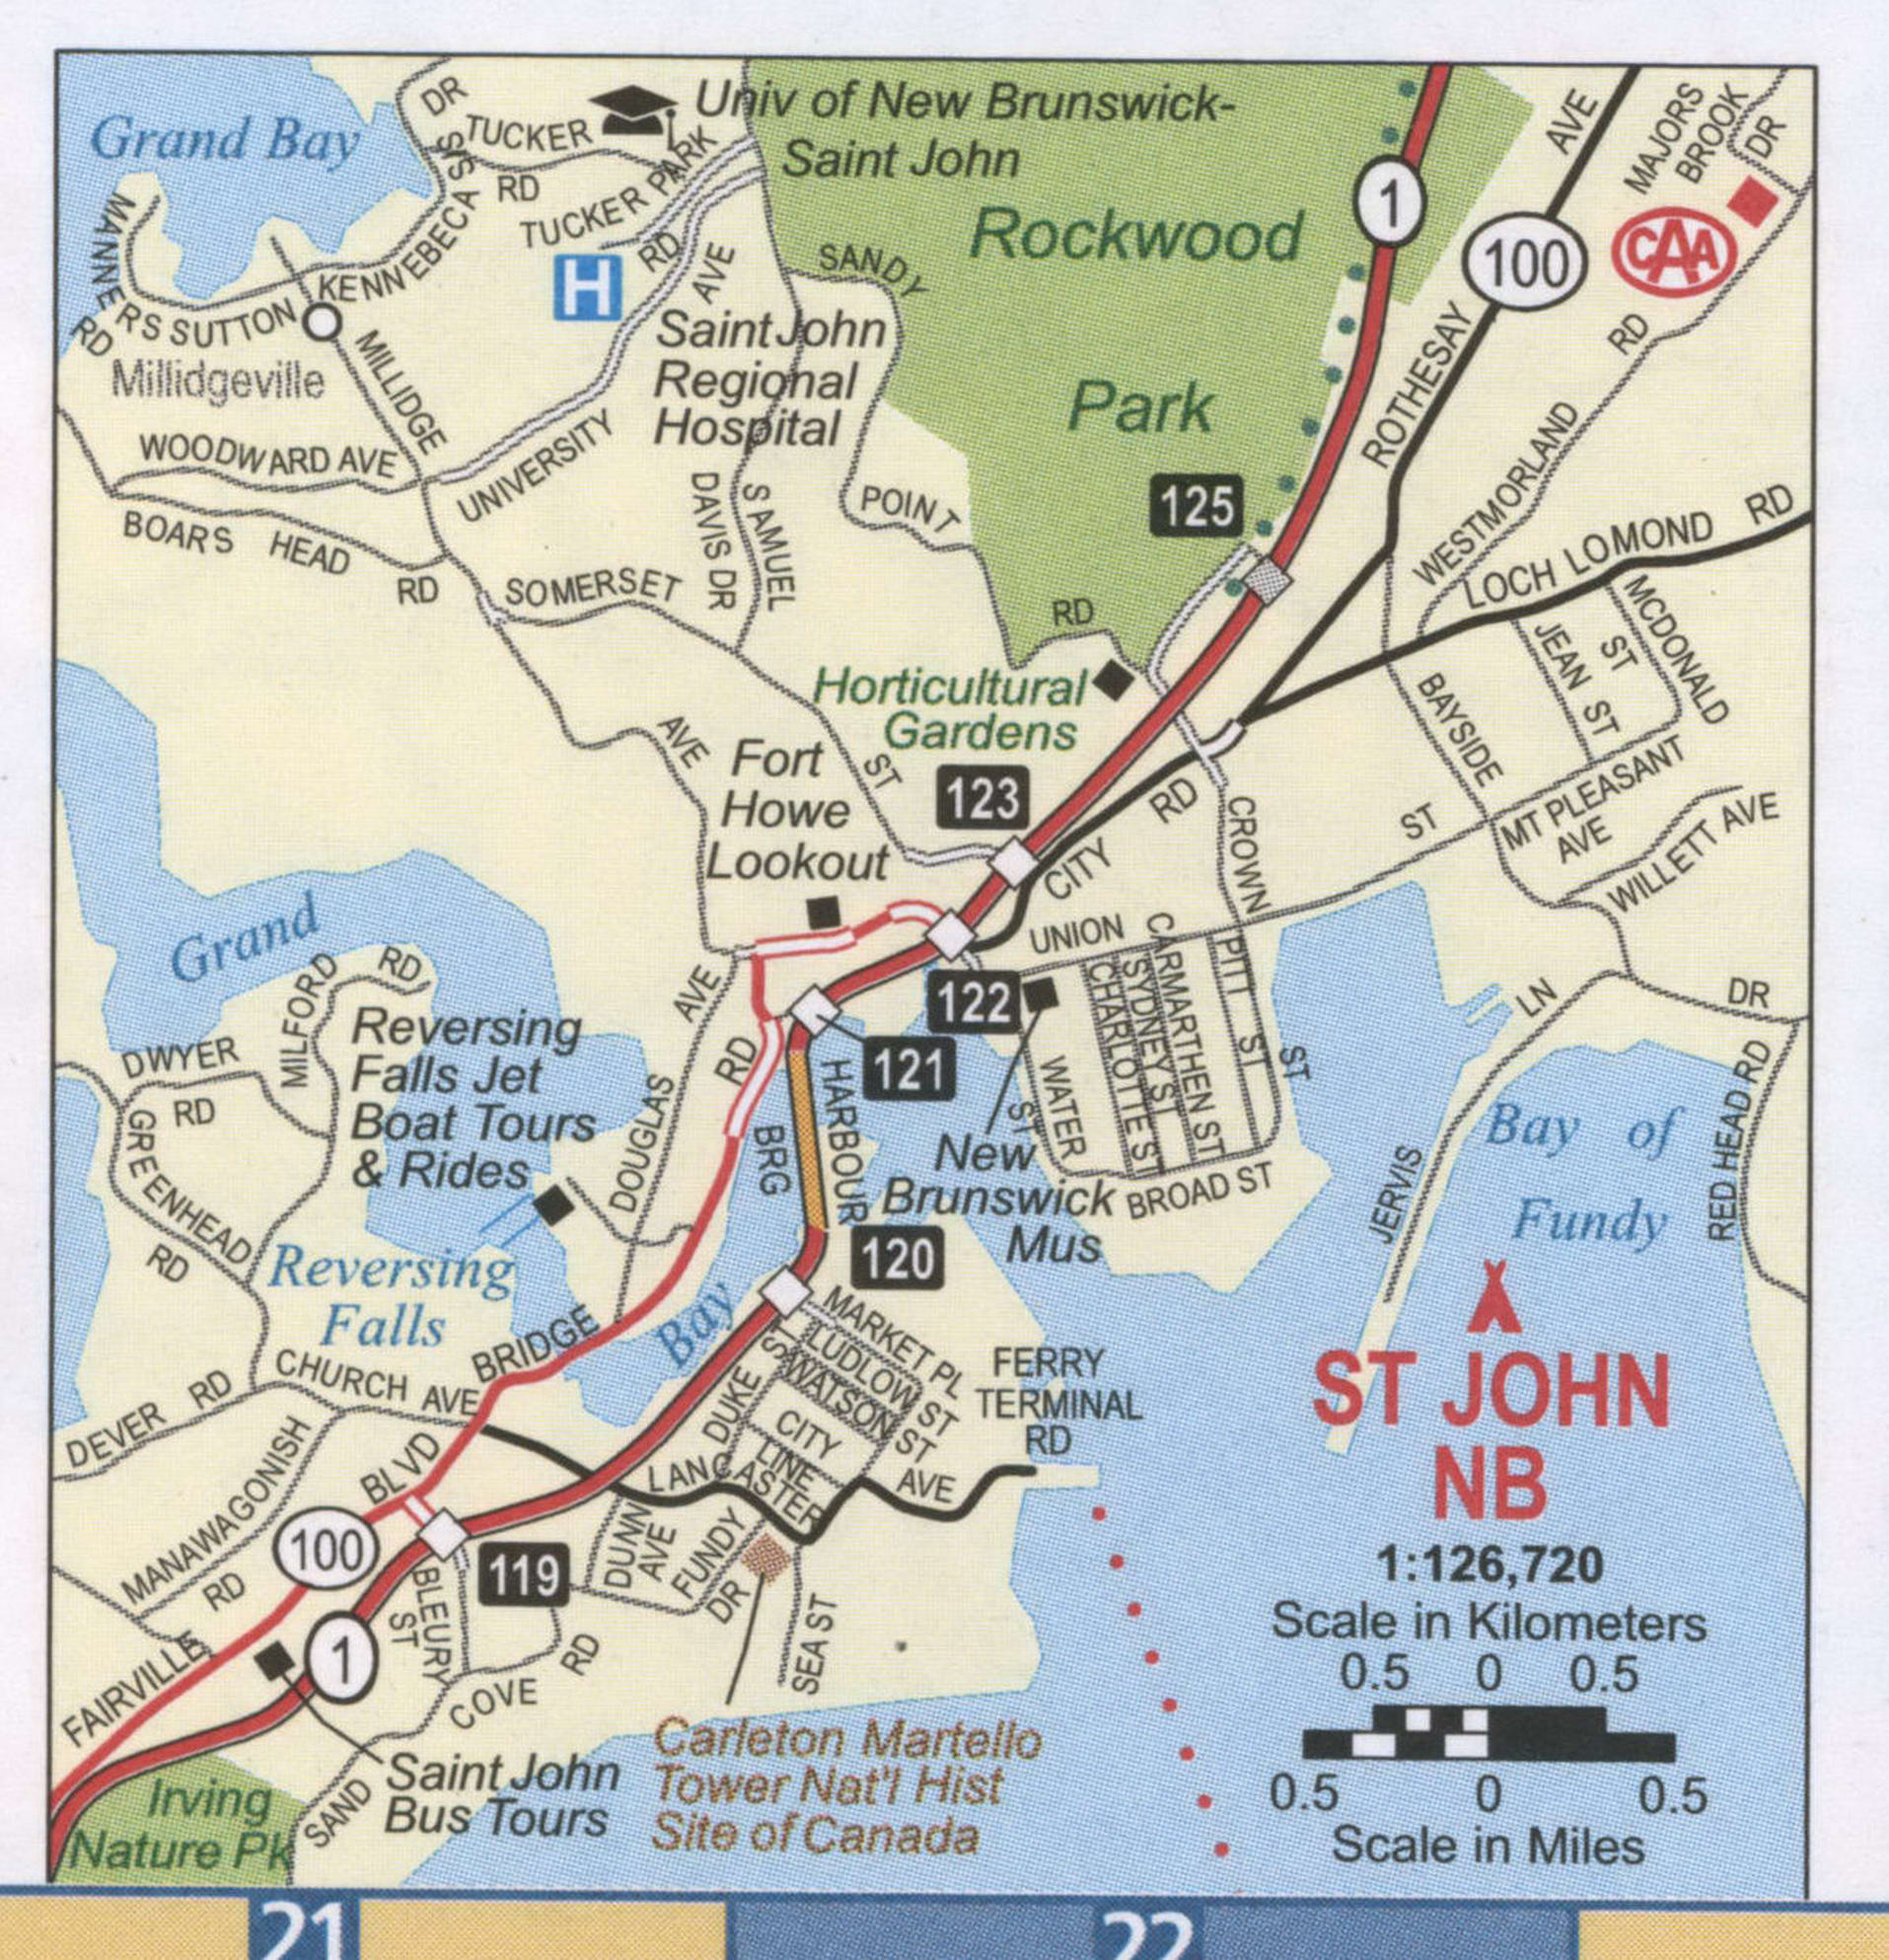 St John NB road map